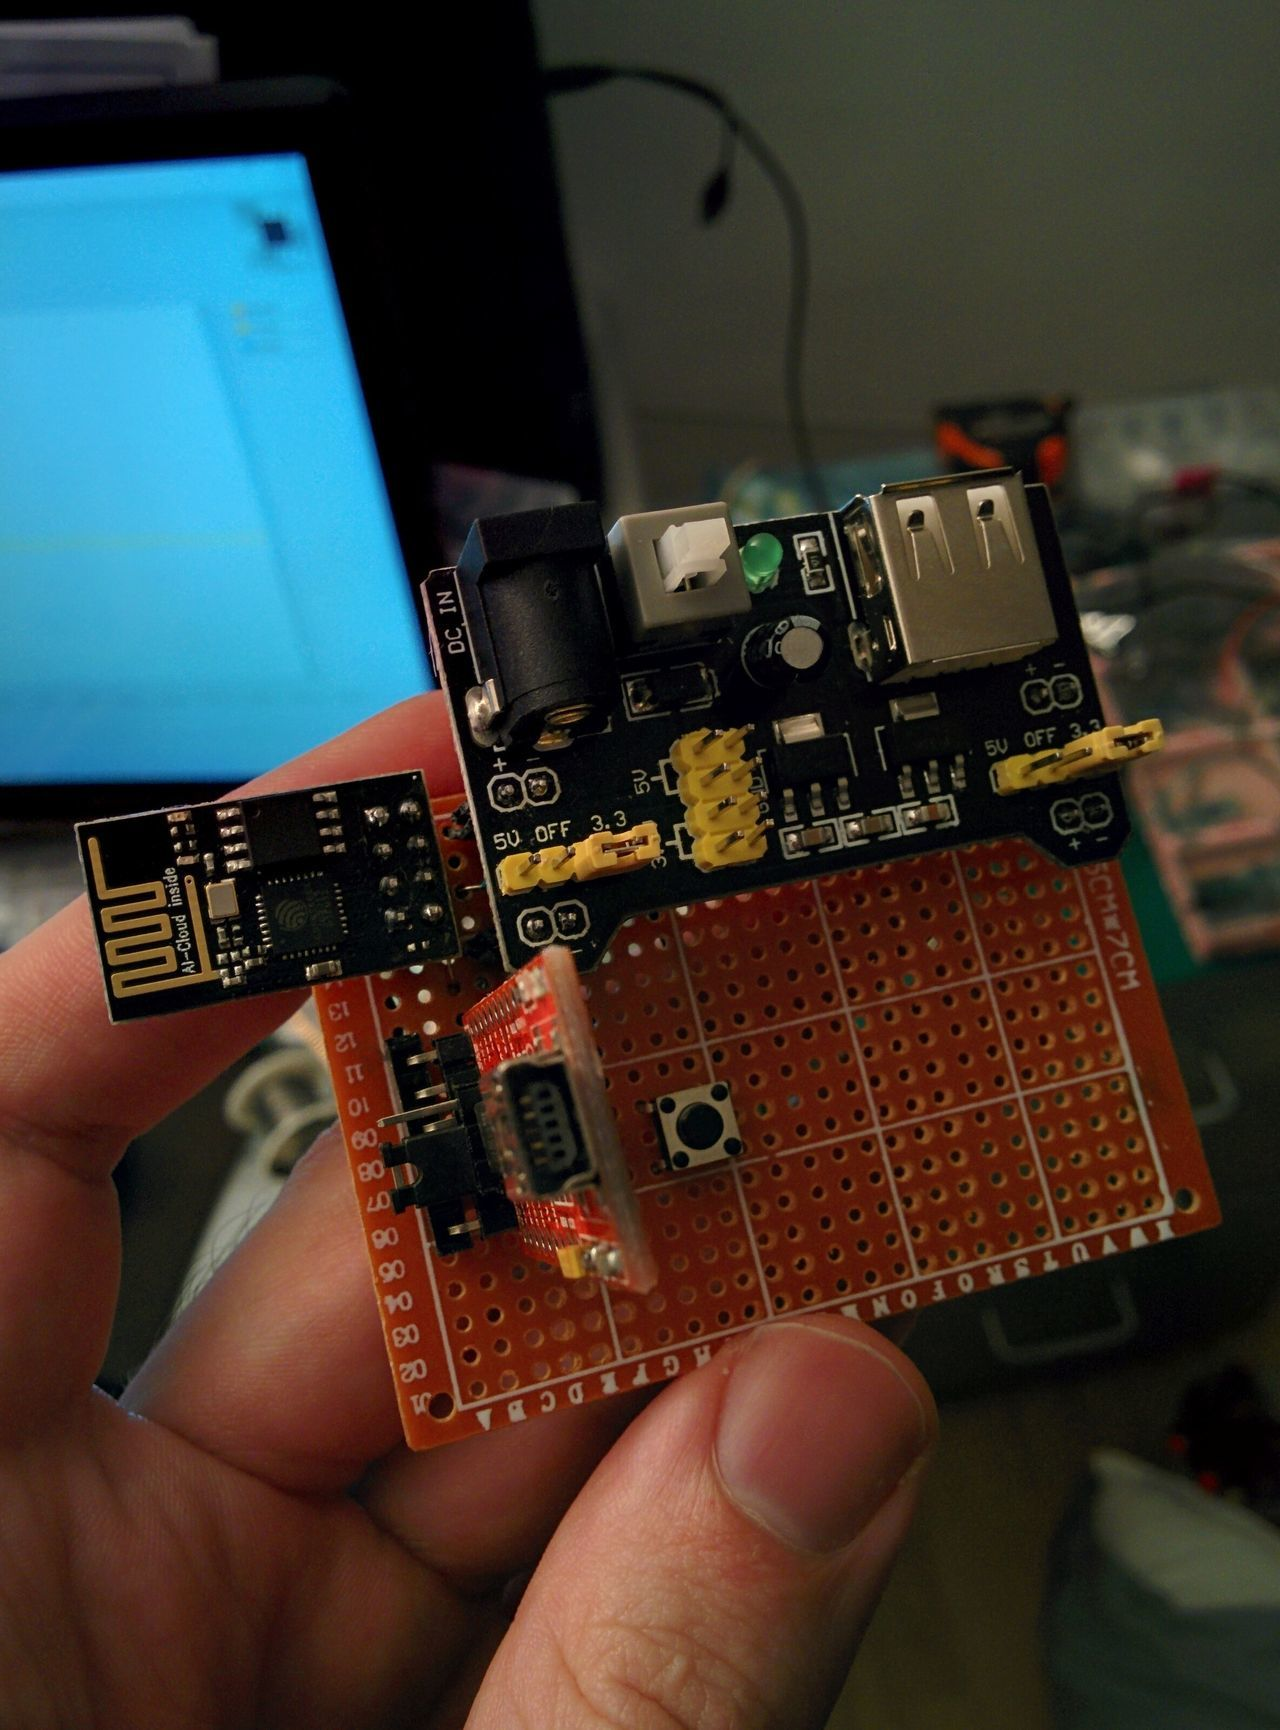 Perfboard with ESP01